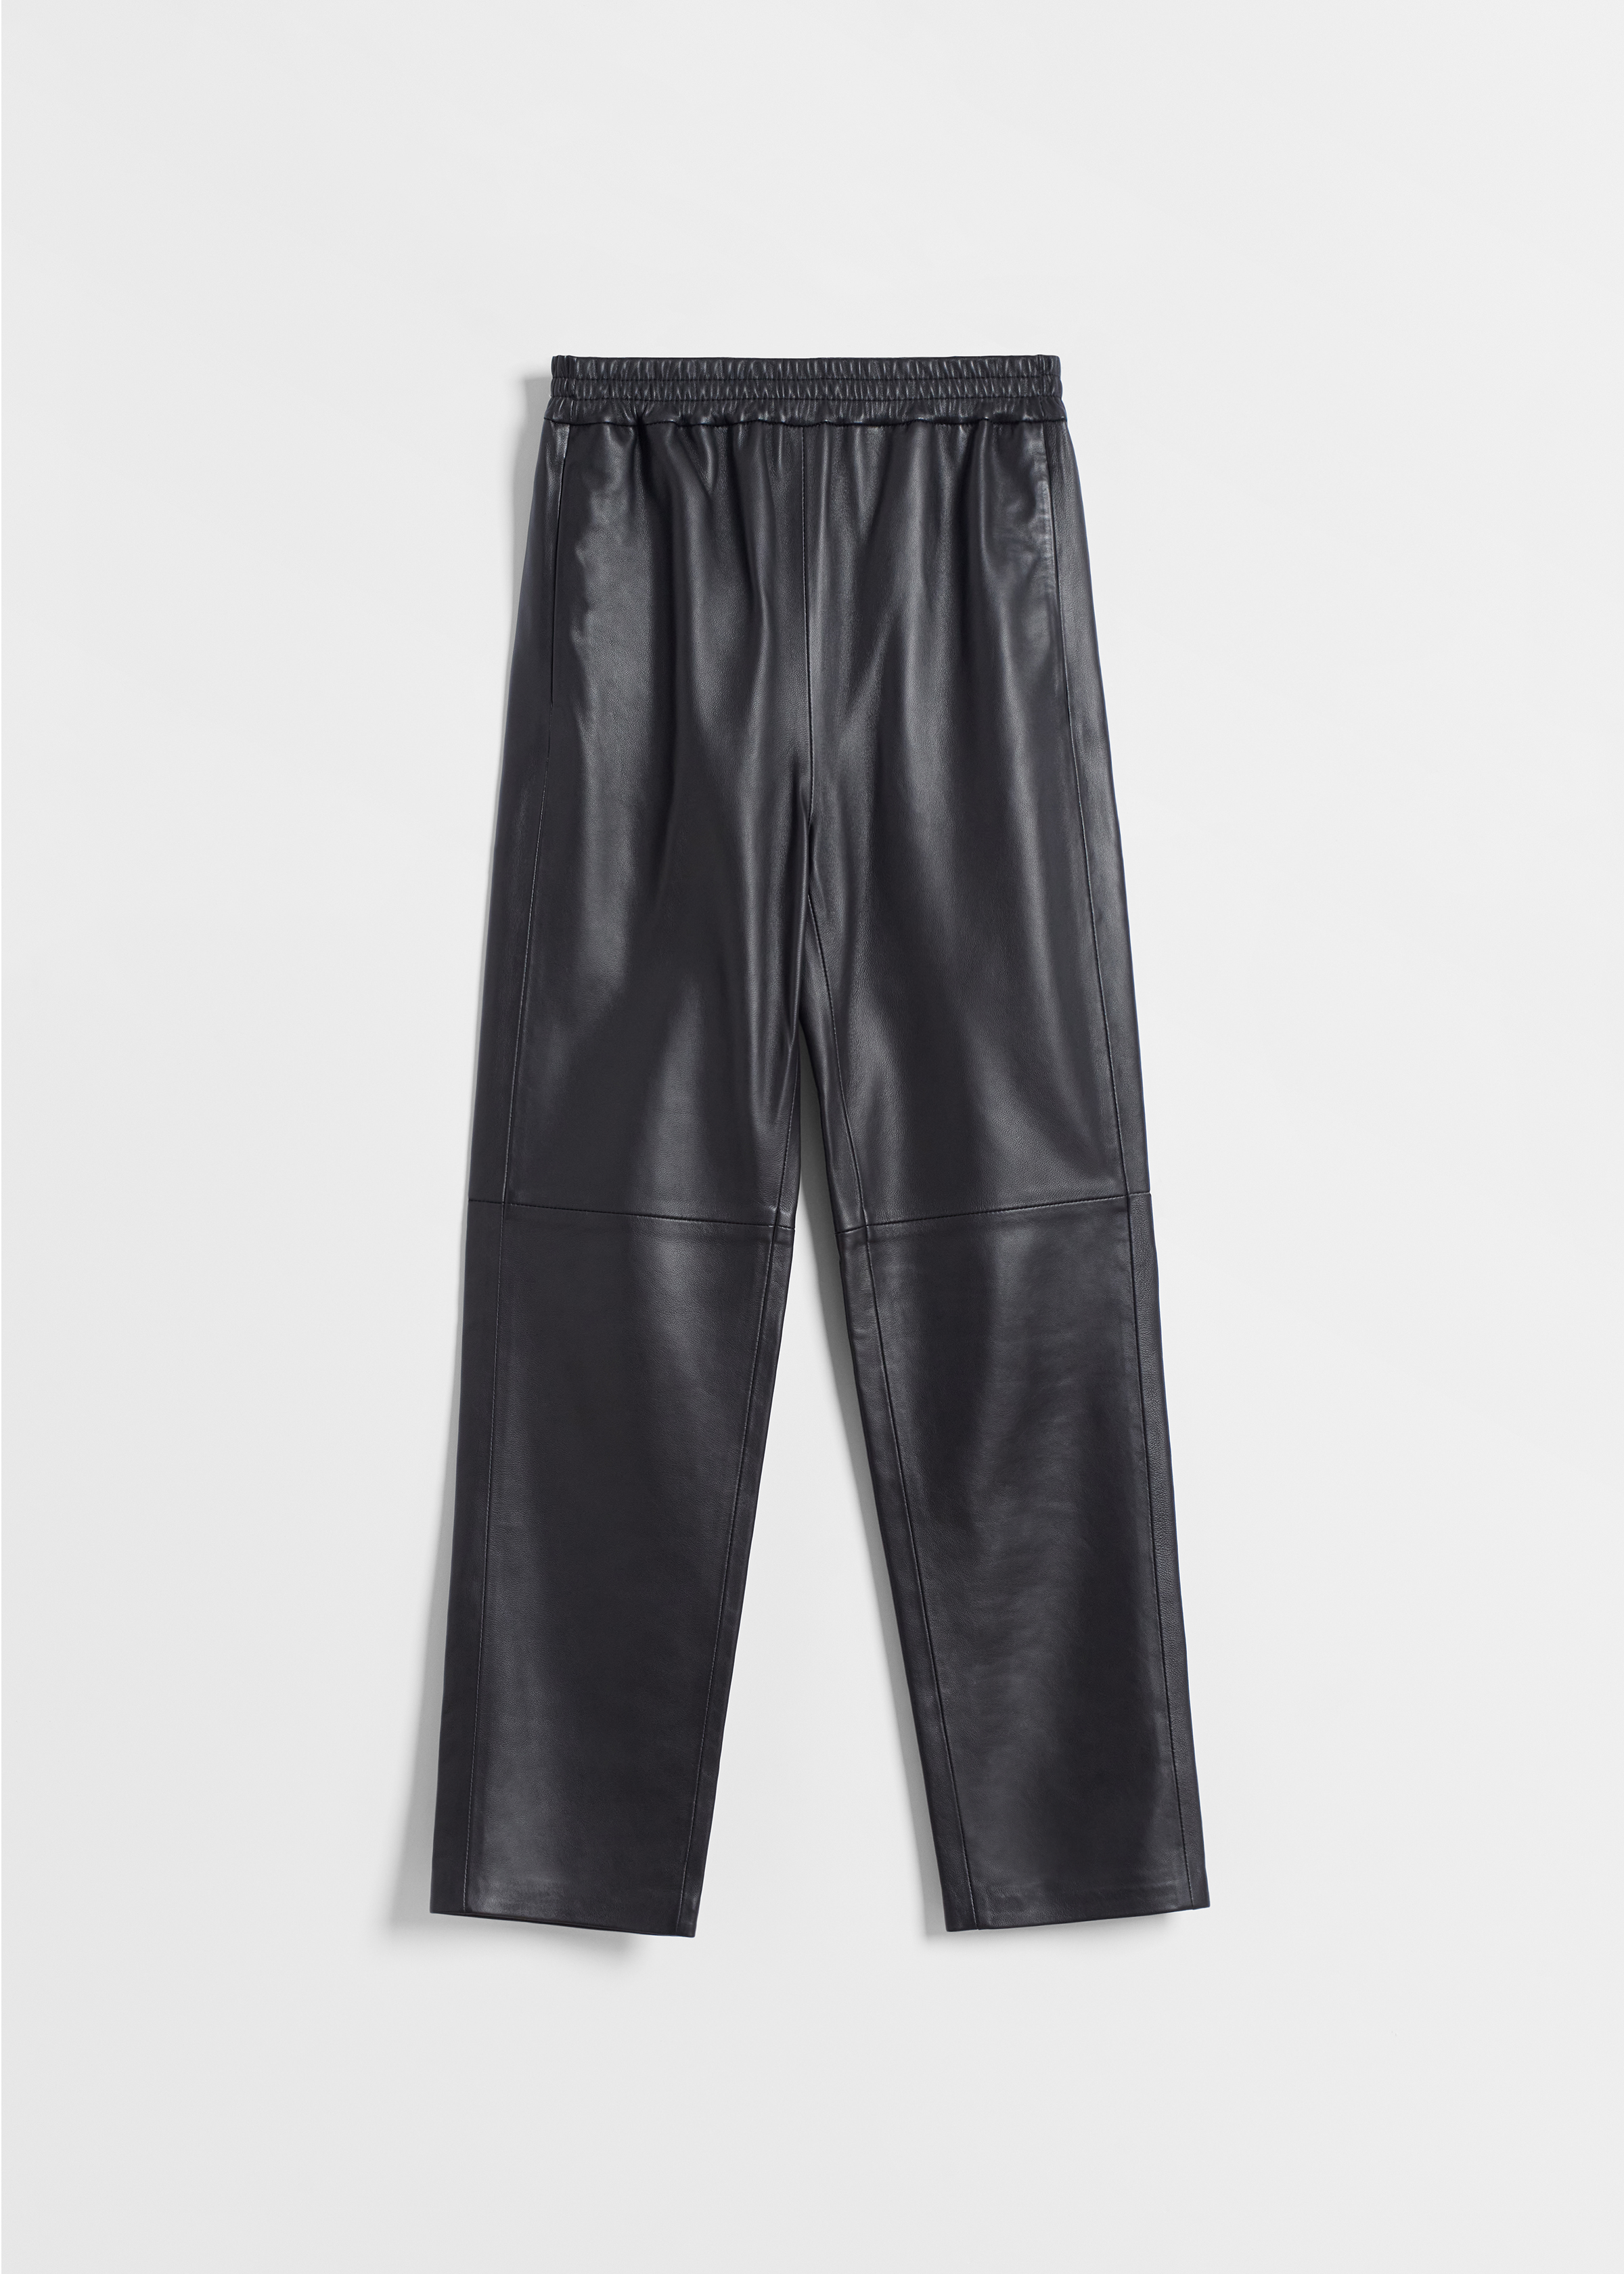 CO - Jogger Pant in Leather - Black